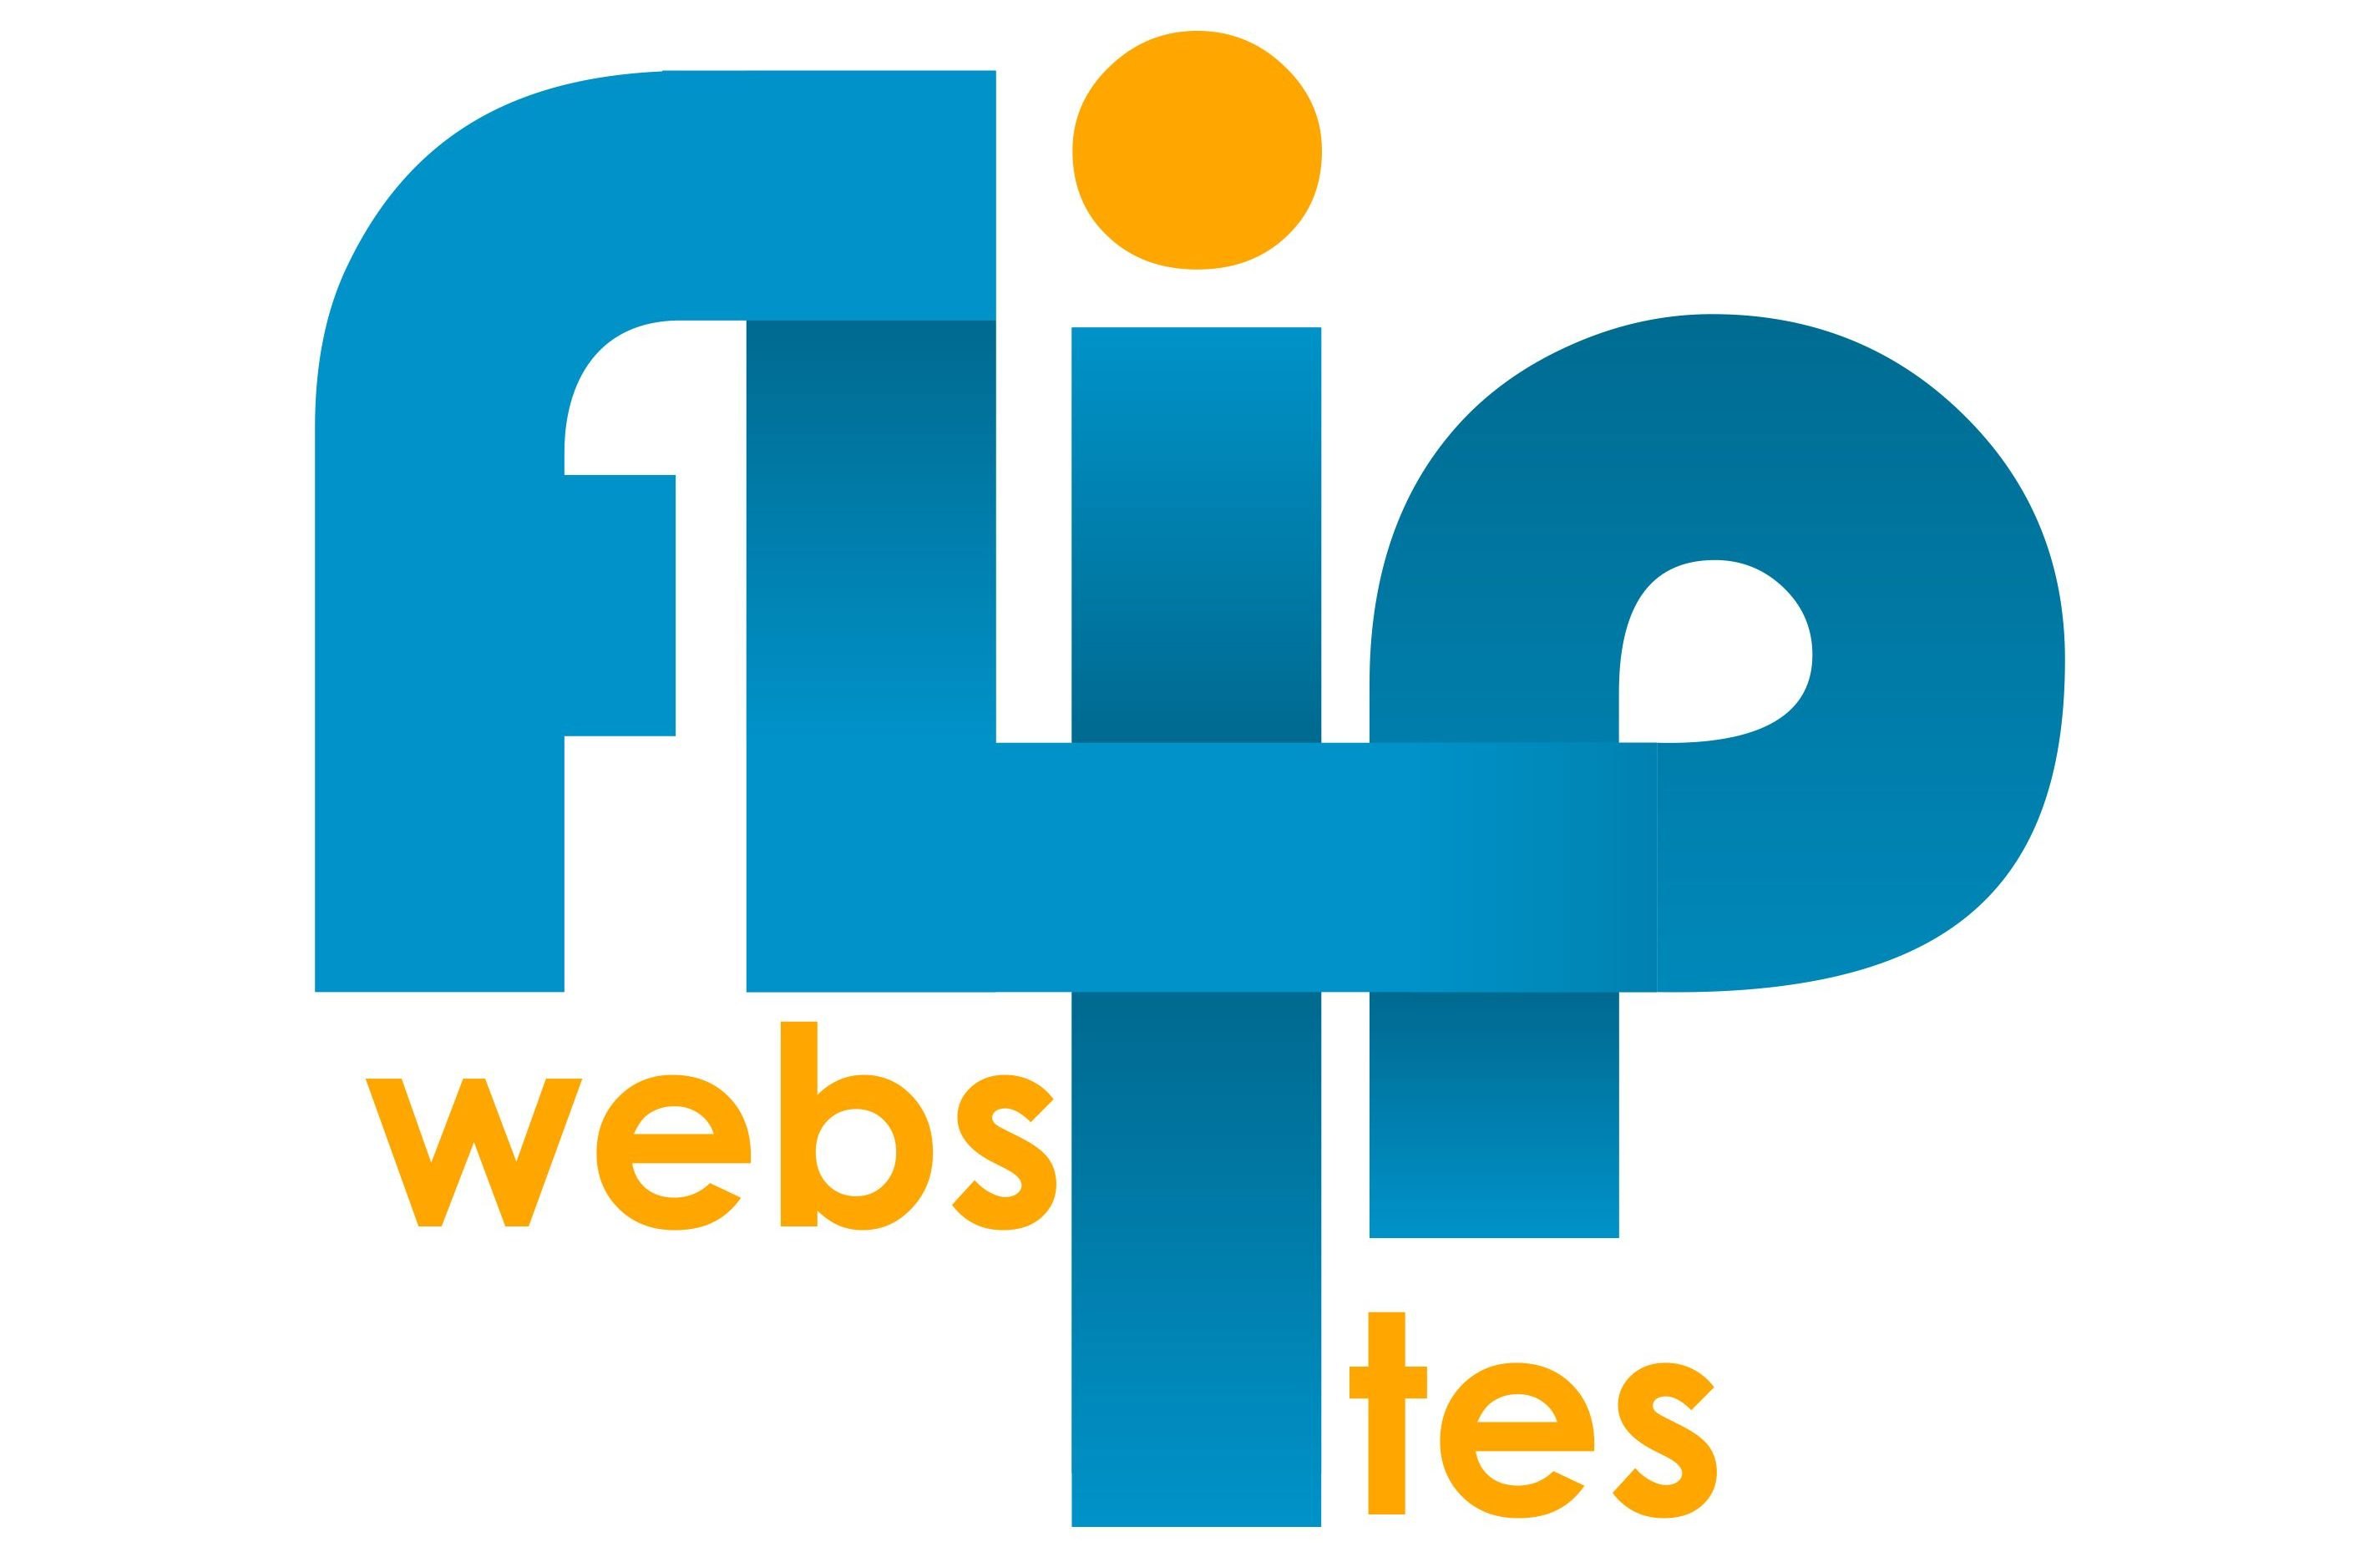 websitesflip.com